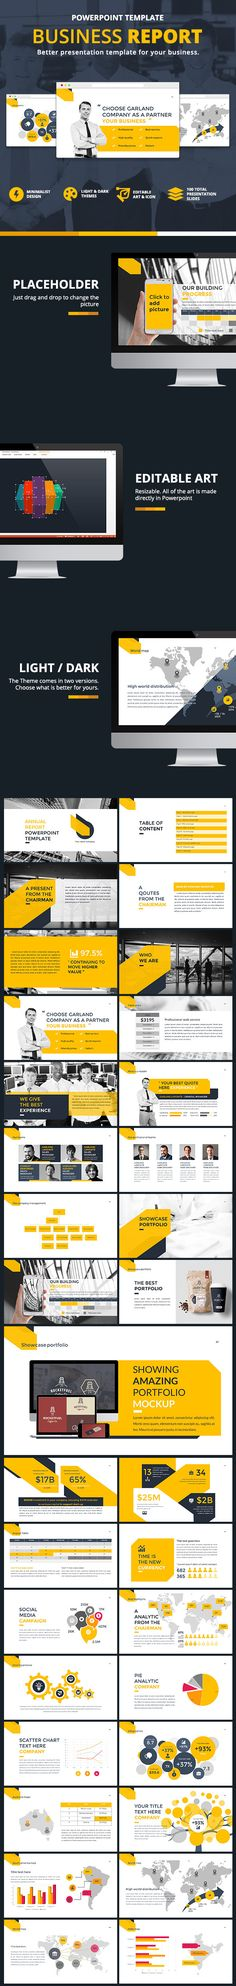 Business Report Presentation PowerPoint Template #design #slides Download: http://graphicriver.net/item/business-report-presentation/12453164?ref=ksioks